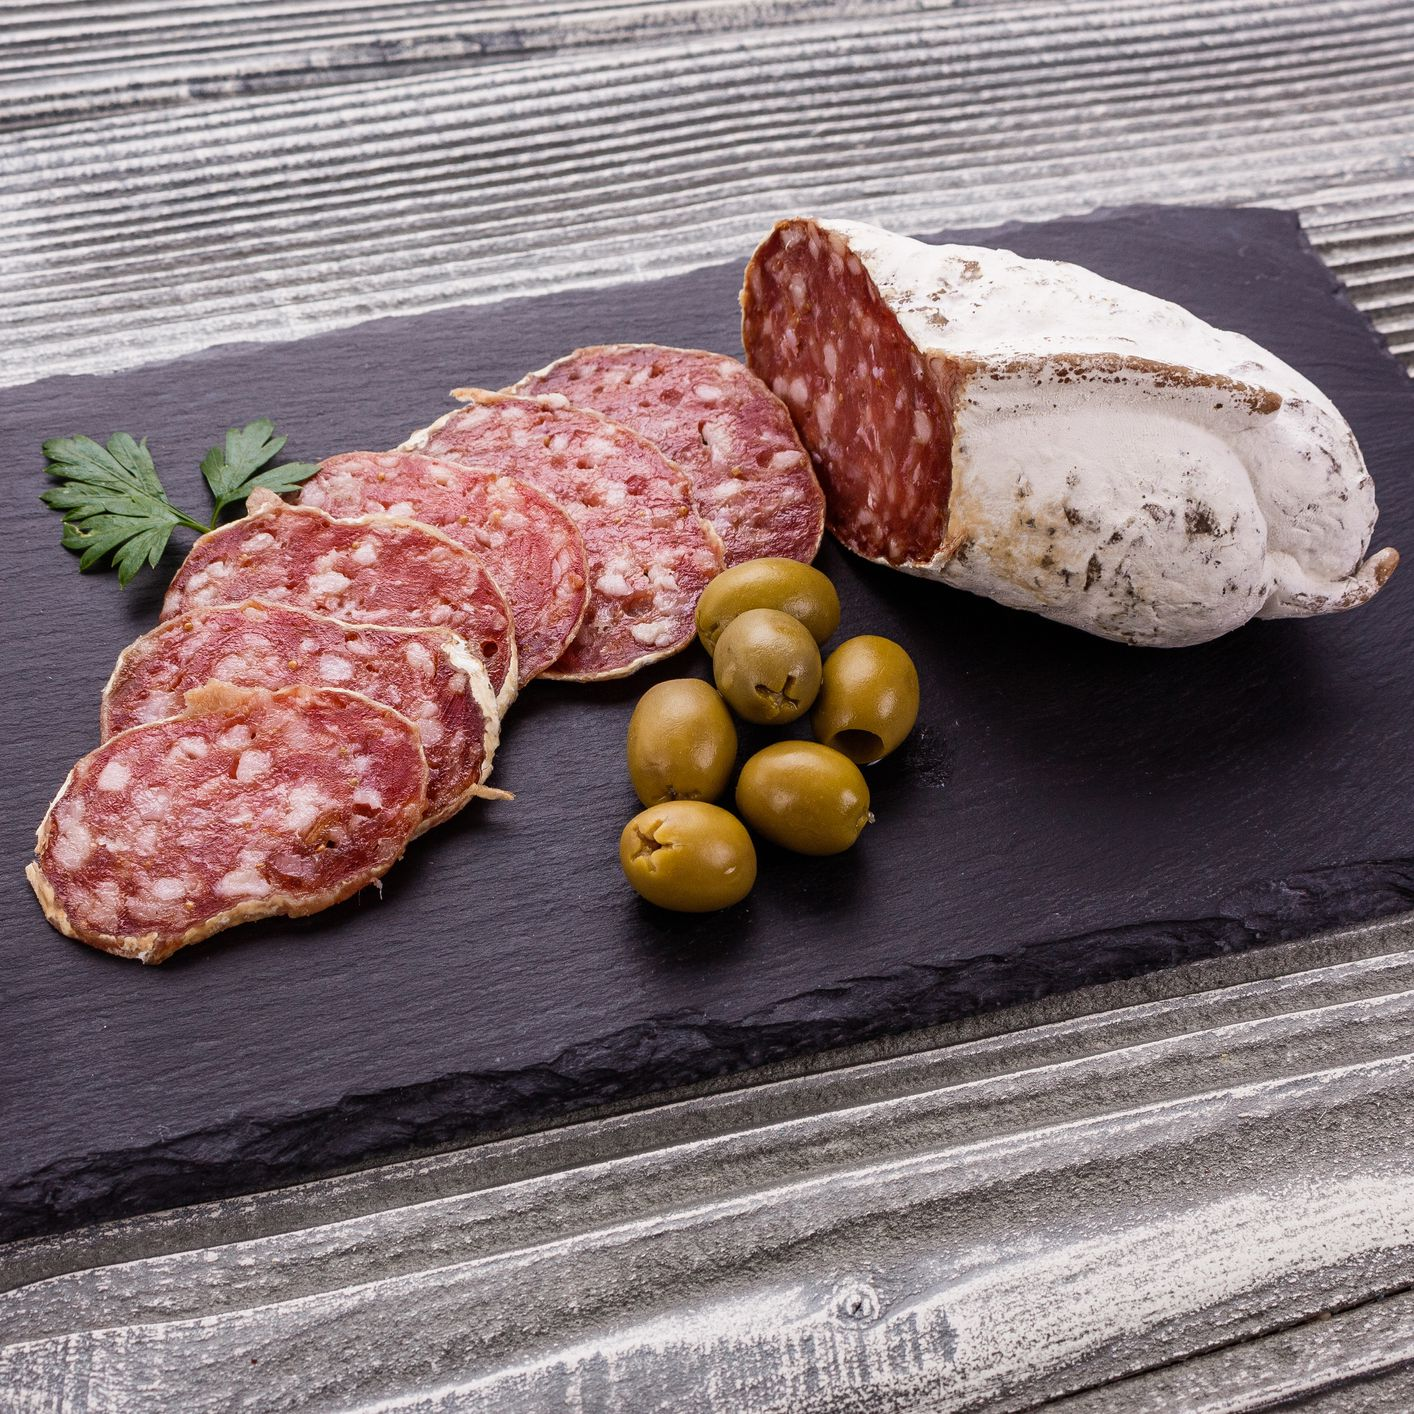 Classic Saucisson Sec (French Cured